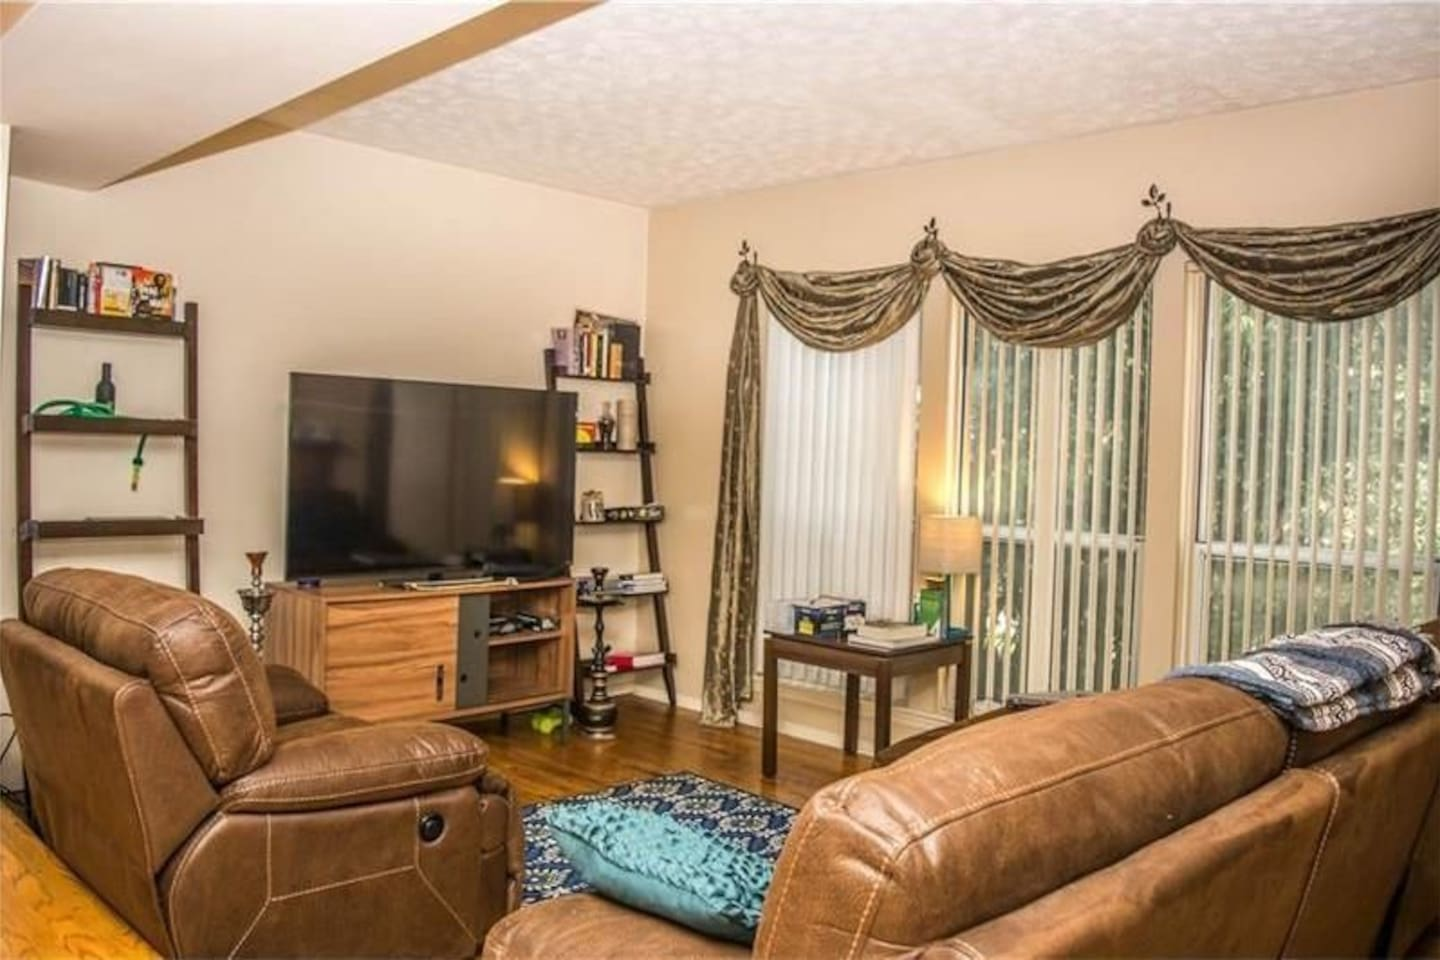 L shaped couch, love seat, TV with Netflix and Amazon Prime